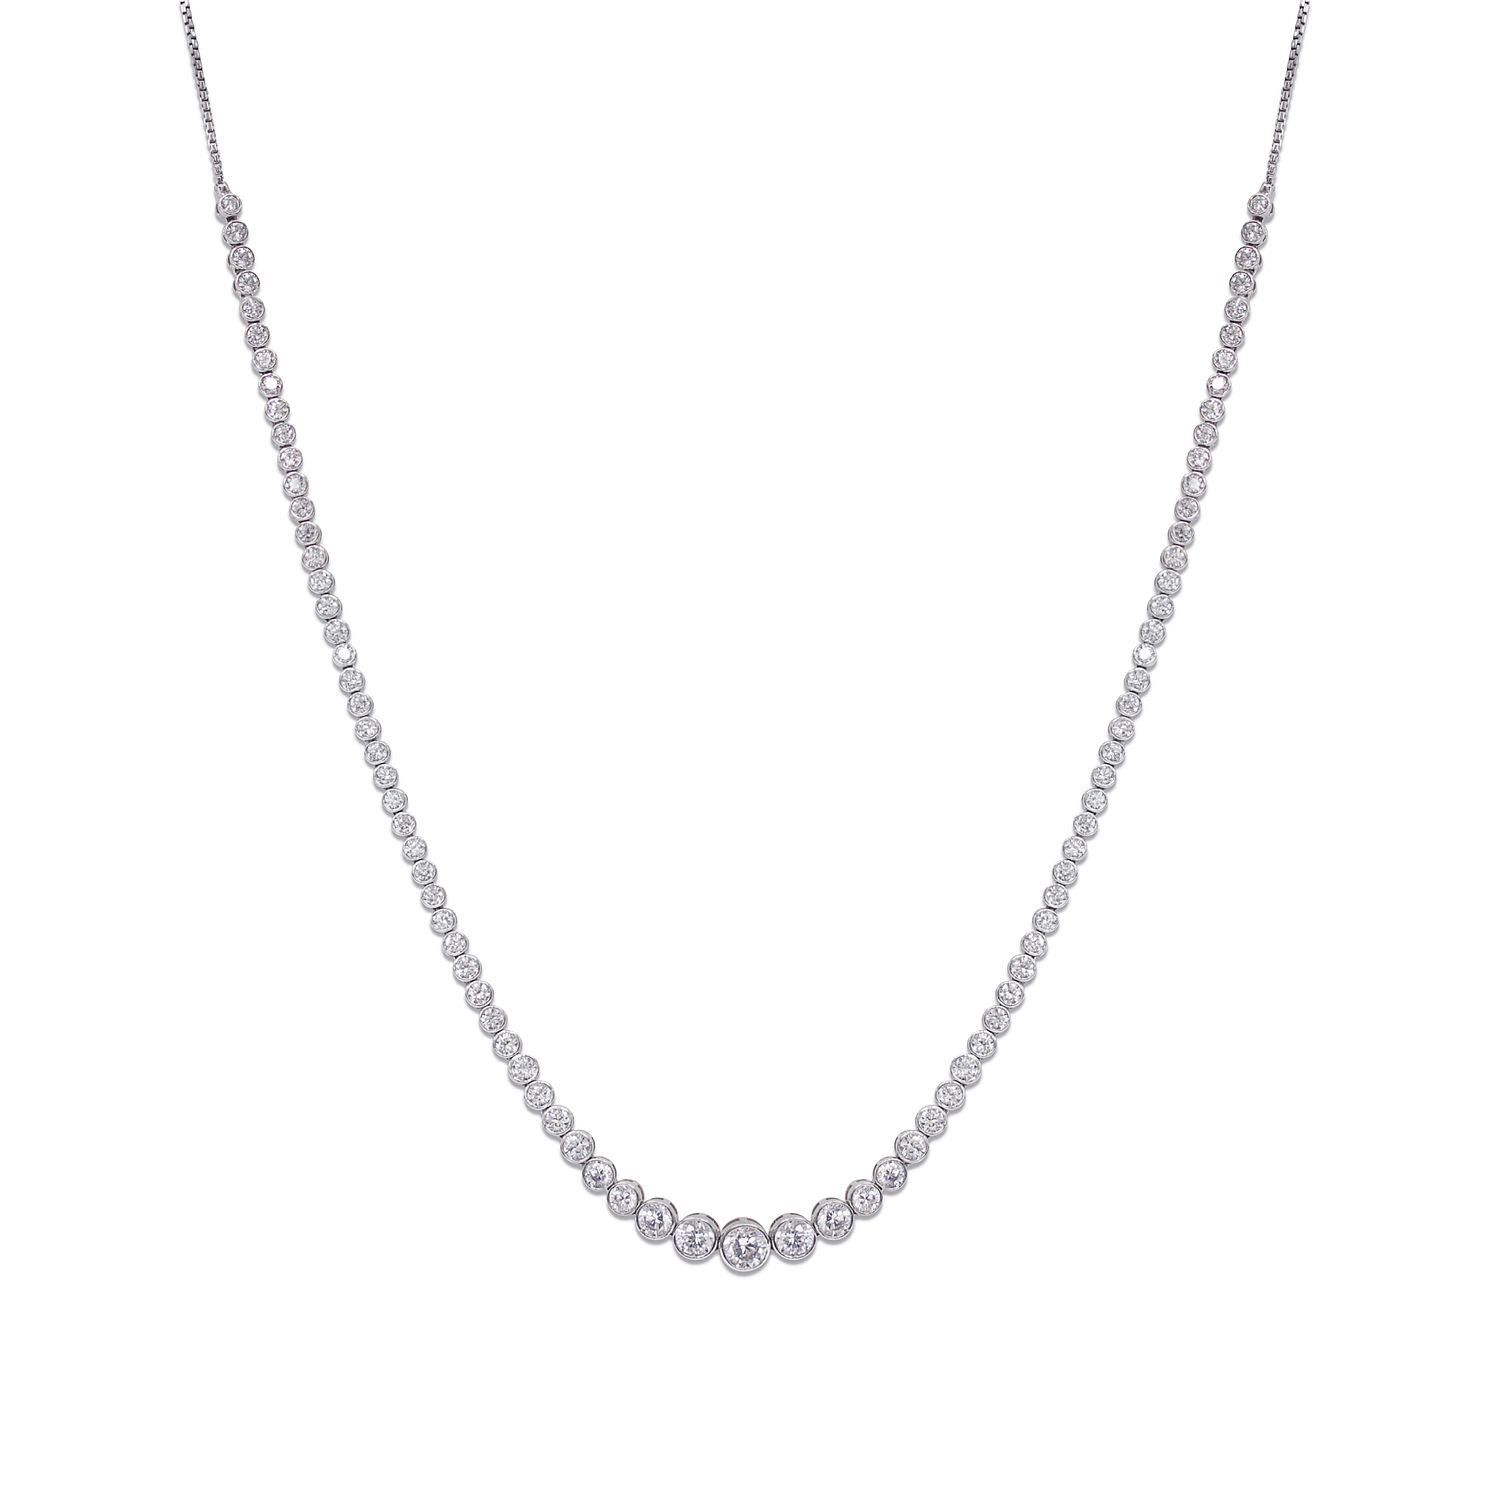 CARAT* LONDON Quentin Sterling Silver Necklace - Product number 6957676